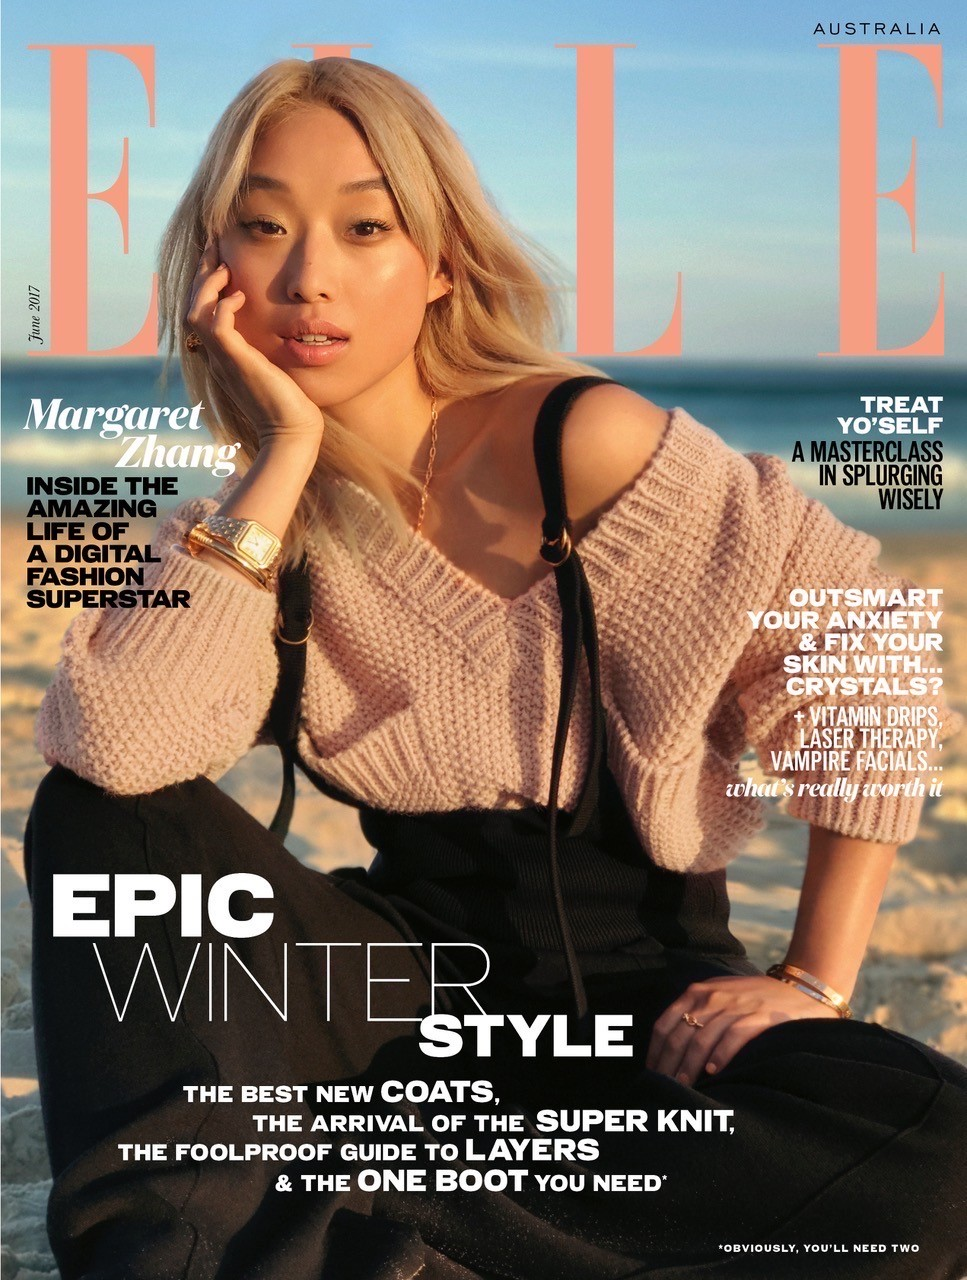 ELLE magazine has shot its latest cover and fashion spread using an iPhone 7 Plus.